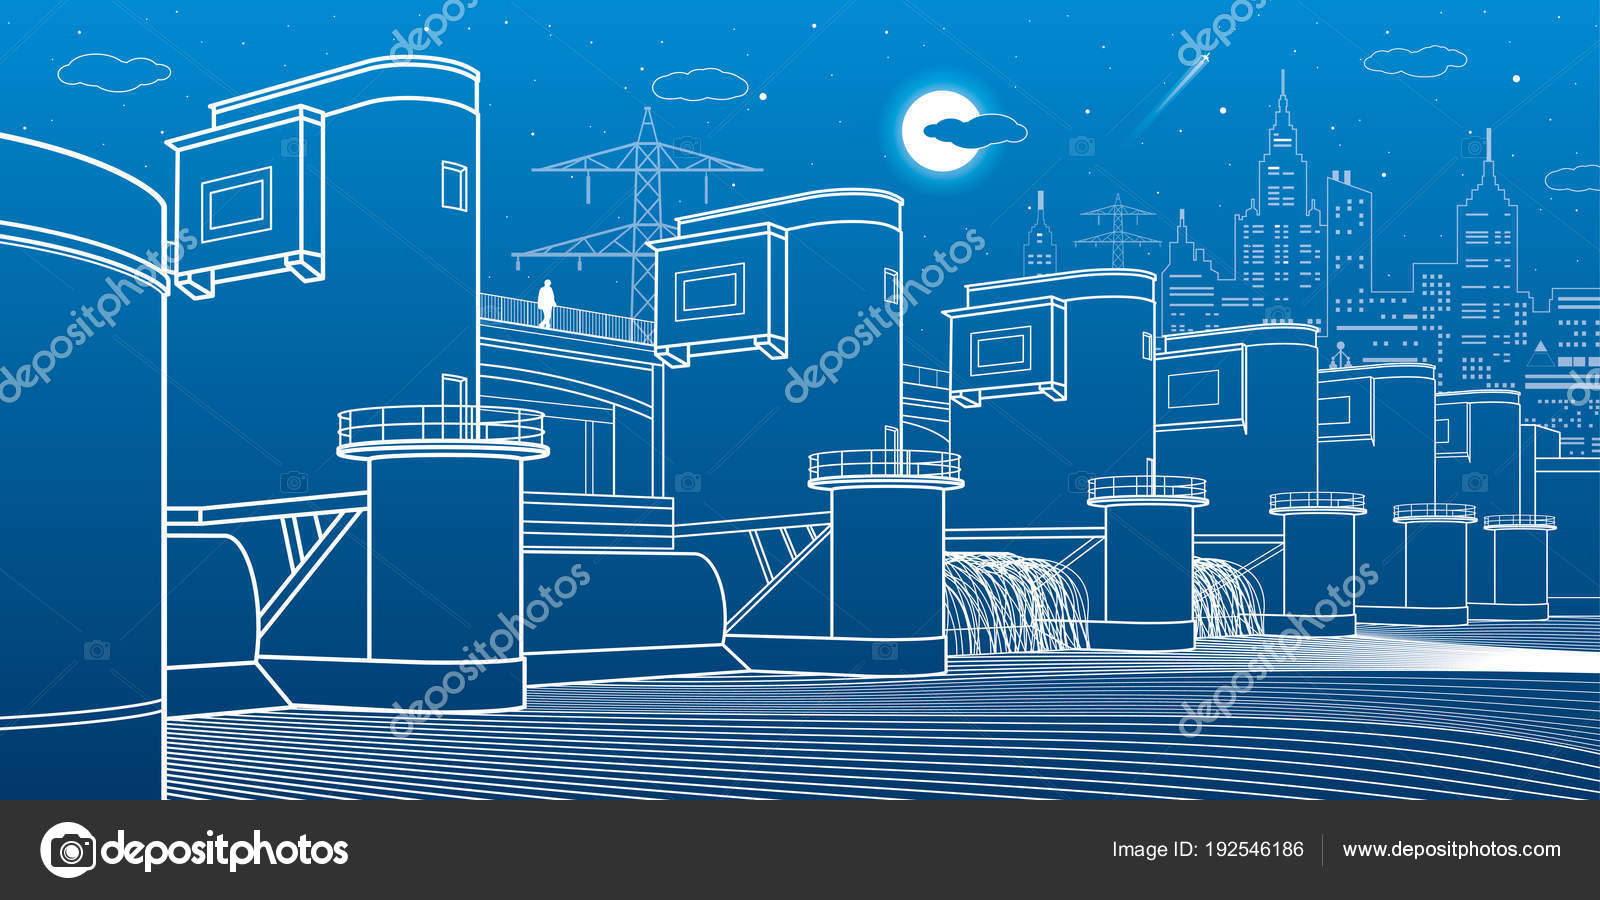 Hydro Power Plant River Dam Energy Station City Infrastructure Layout Diagram Industrial Stock Vector